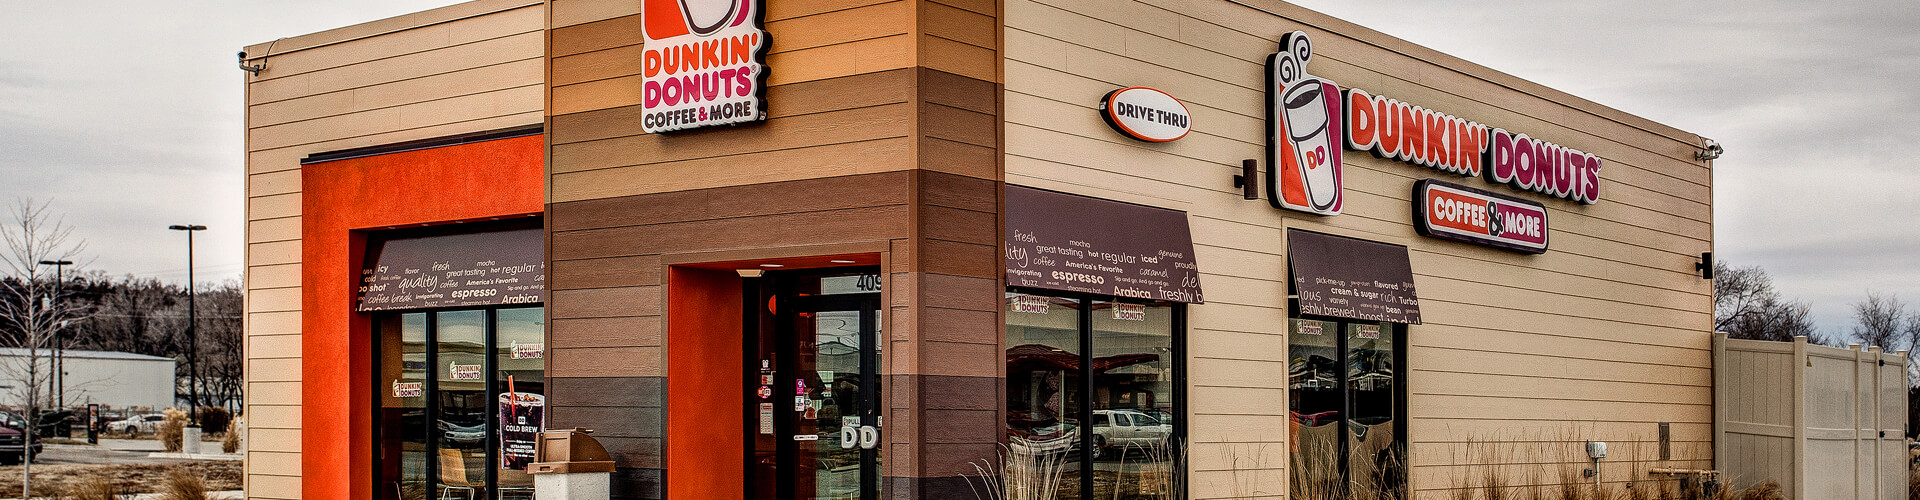 Dunkin Donuts - Leiszler Oil Company